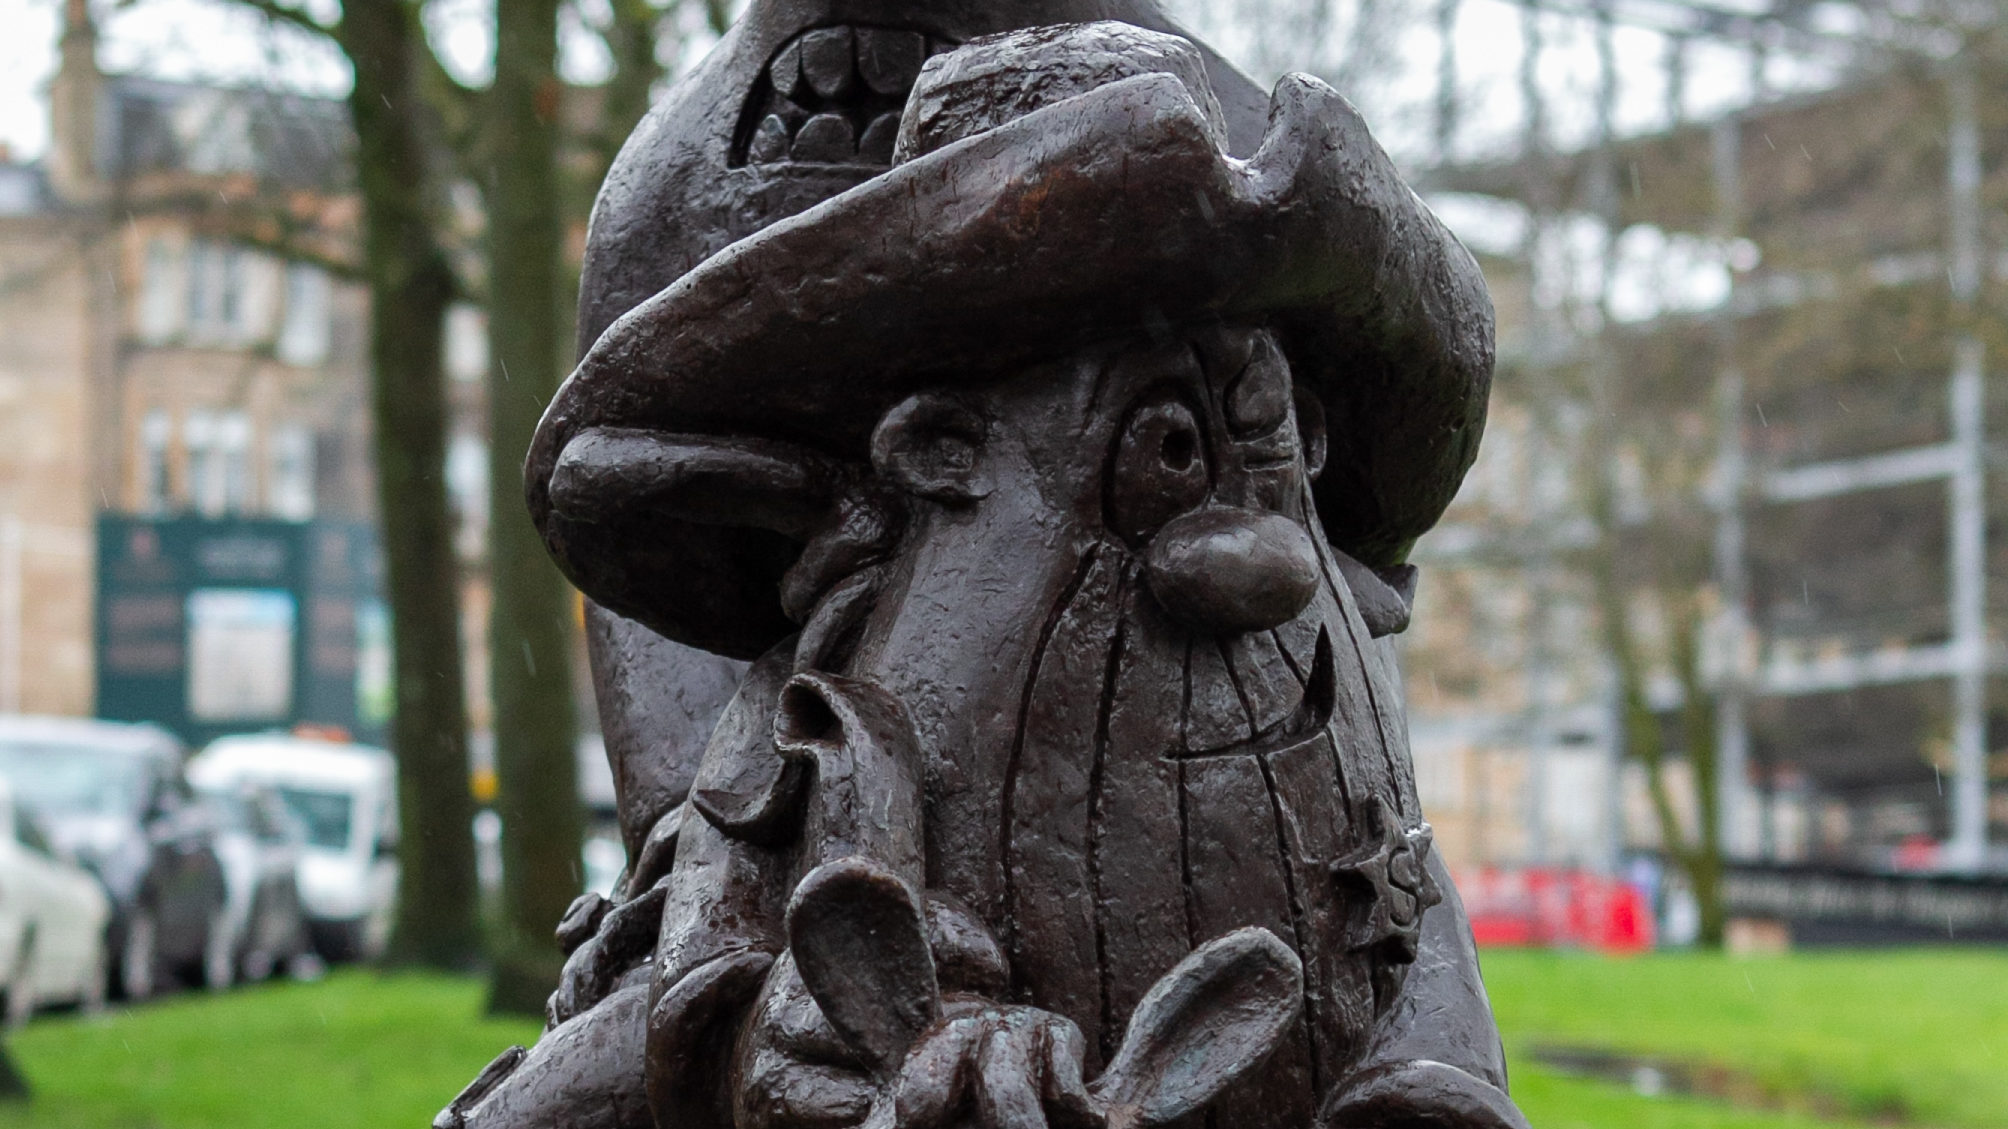 Lobey Dosser statue in Glasgow (Andrew Cawley / DCT Media)